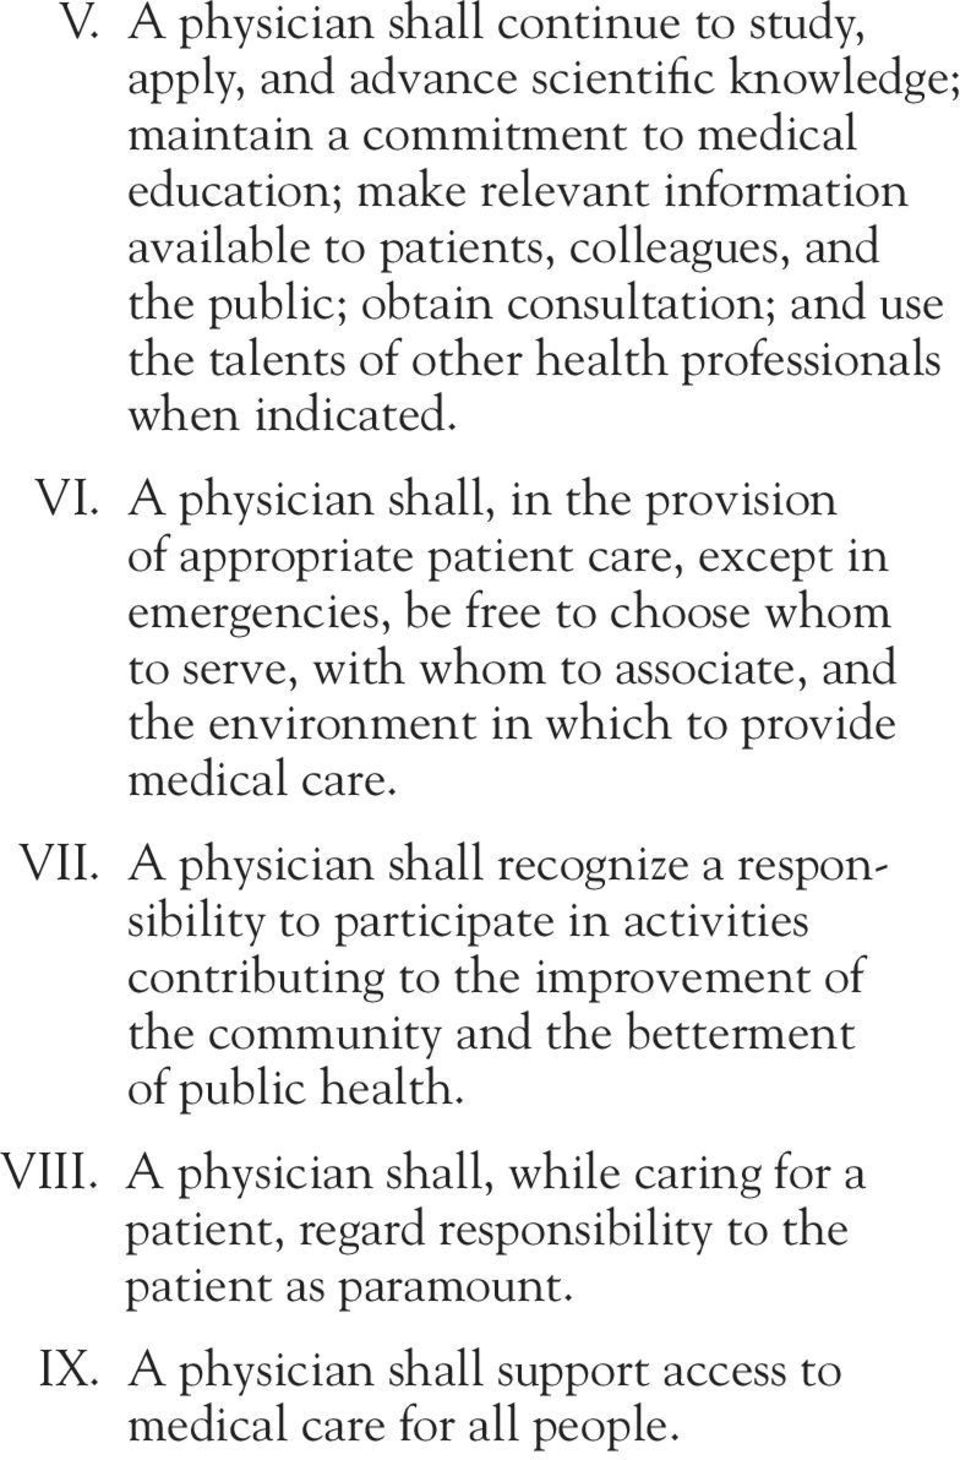 A physician shall, in the provision of appropriate patient care, except in emergencies, be free to choose whom to serve, with whom to associate, and the environment in which to provide medical care.